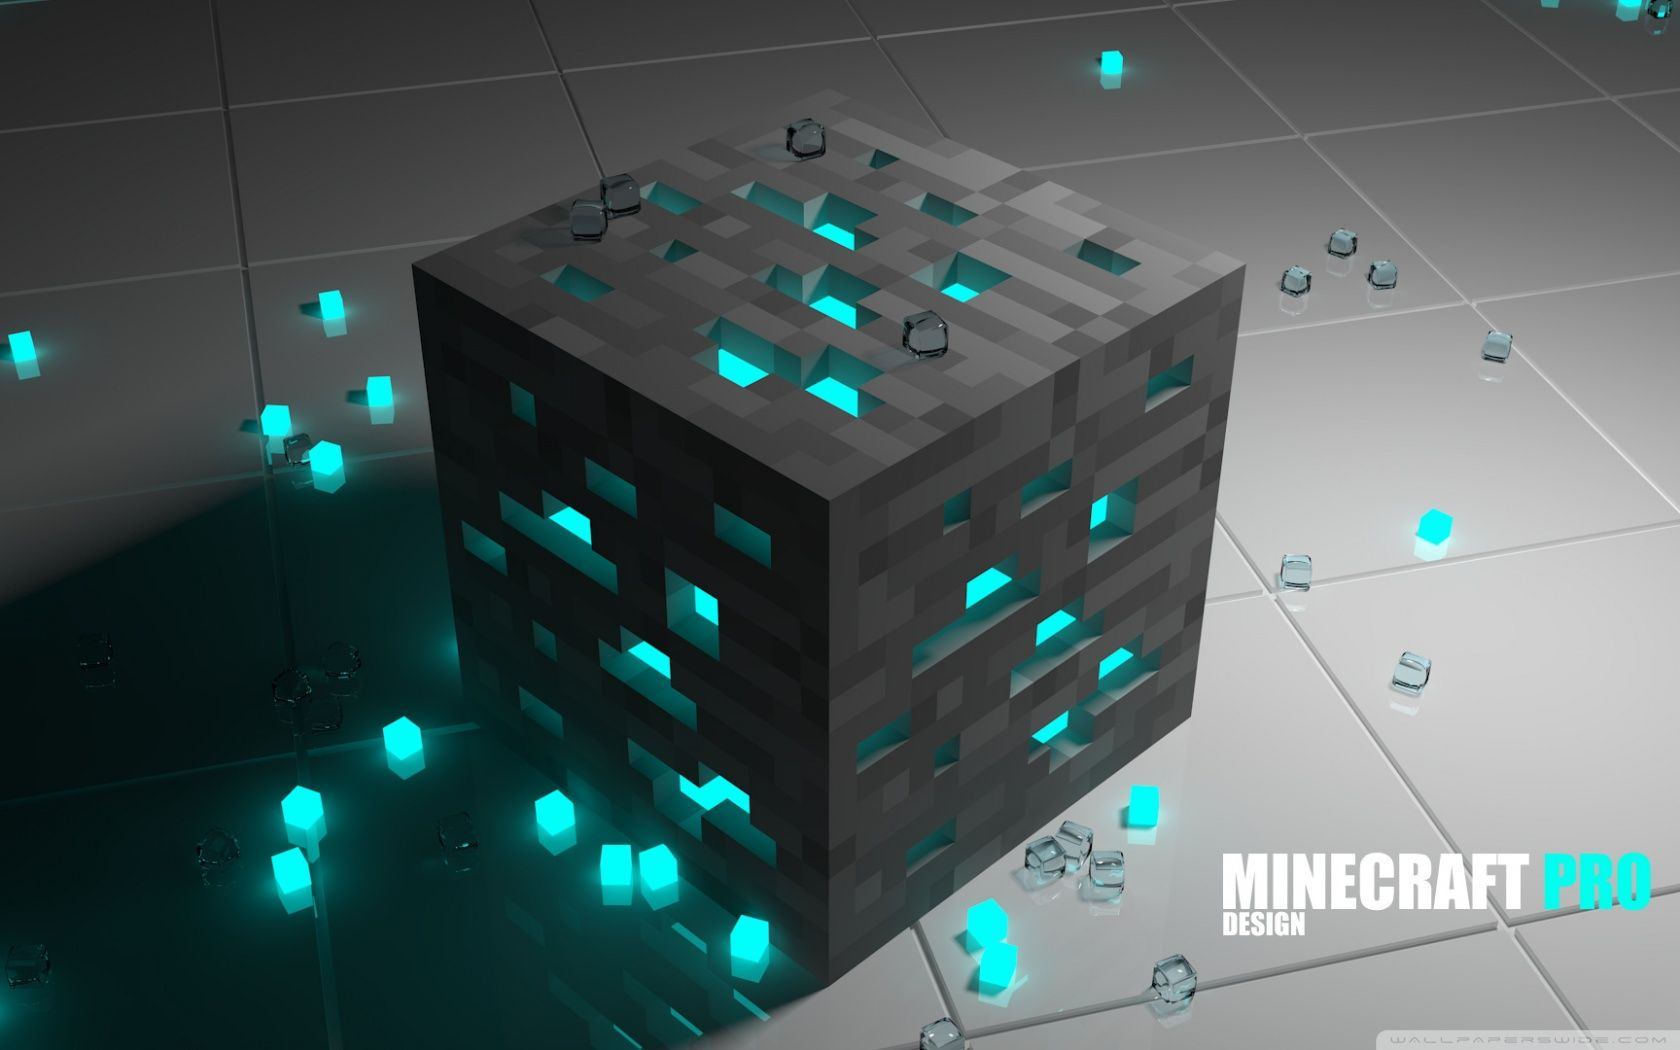 Cool Minecraft Wallpapers For Computer